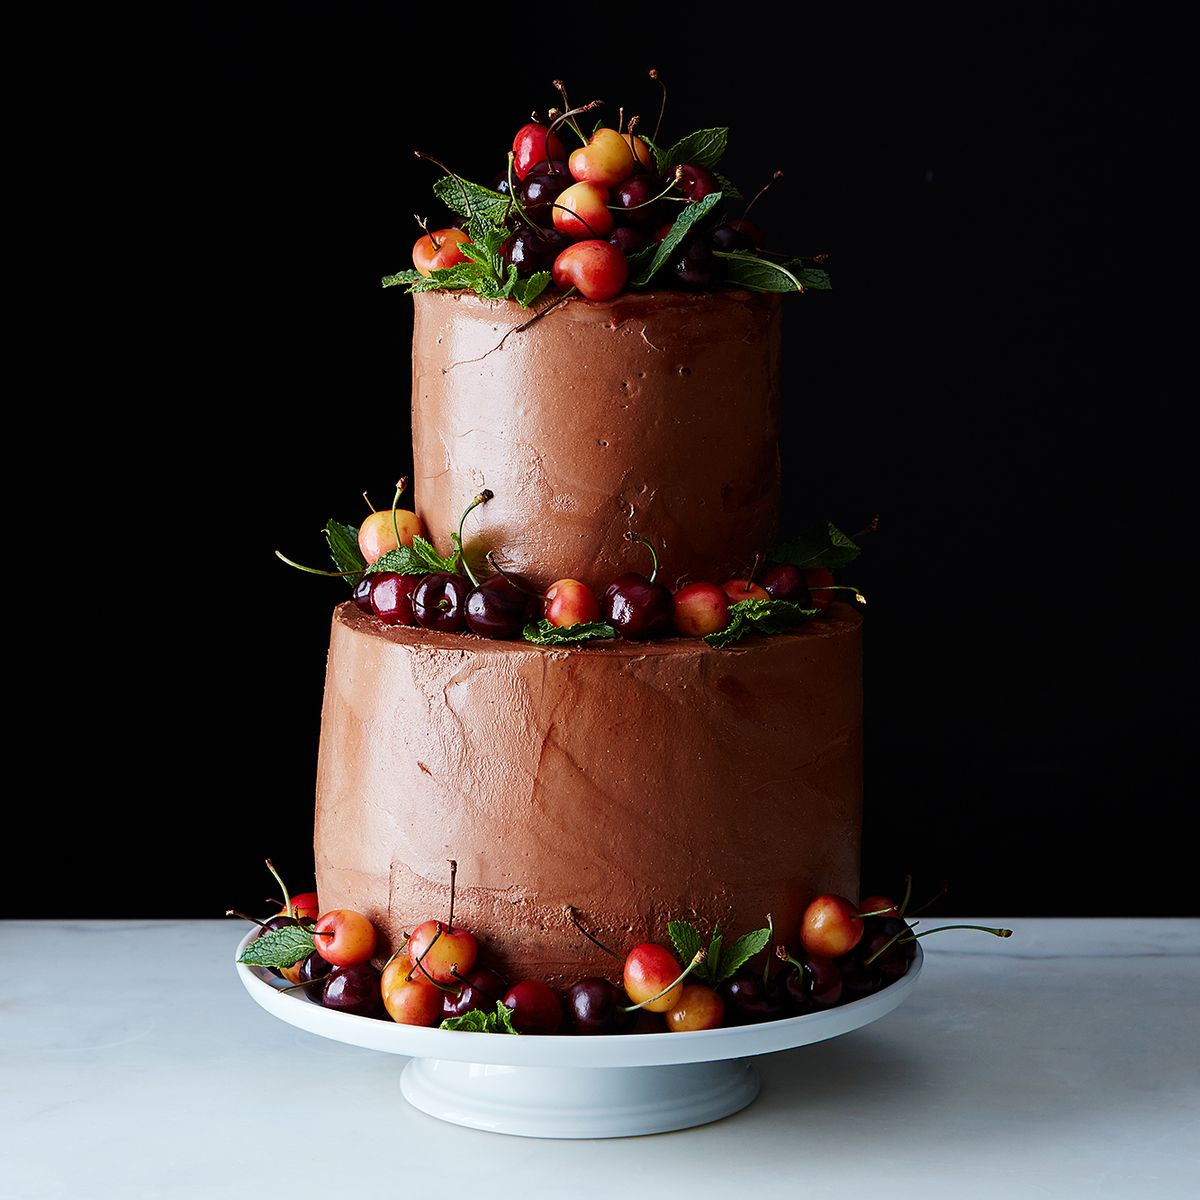 Wedding Cake Decoration 5 Easy Wedding Cake Decorations You Can Do Yourself